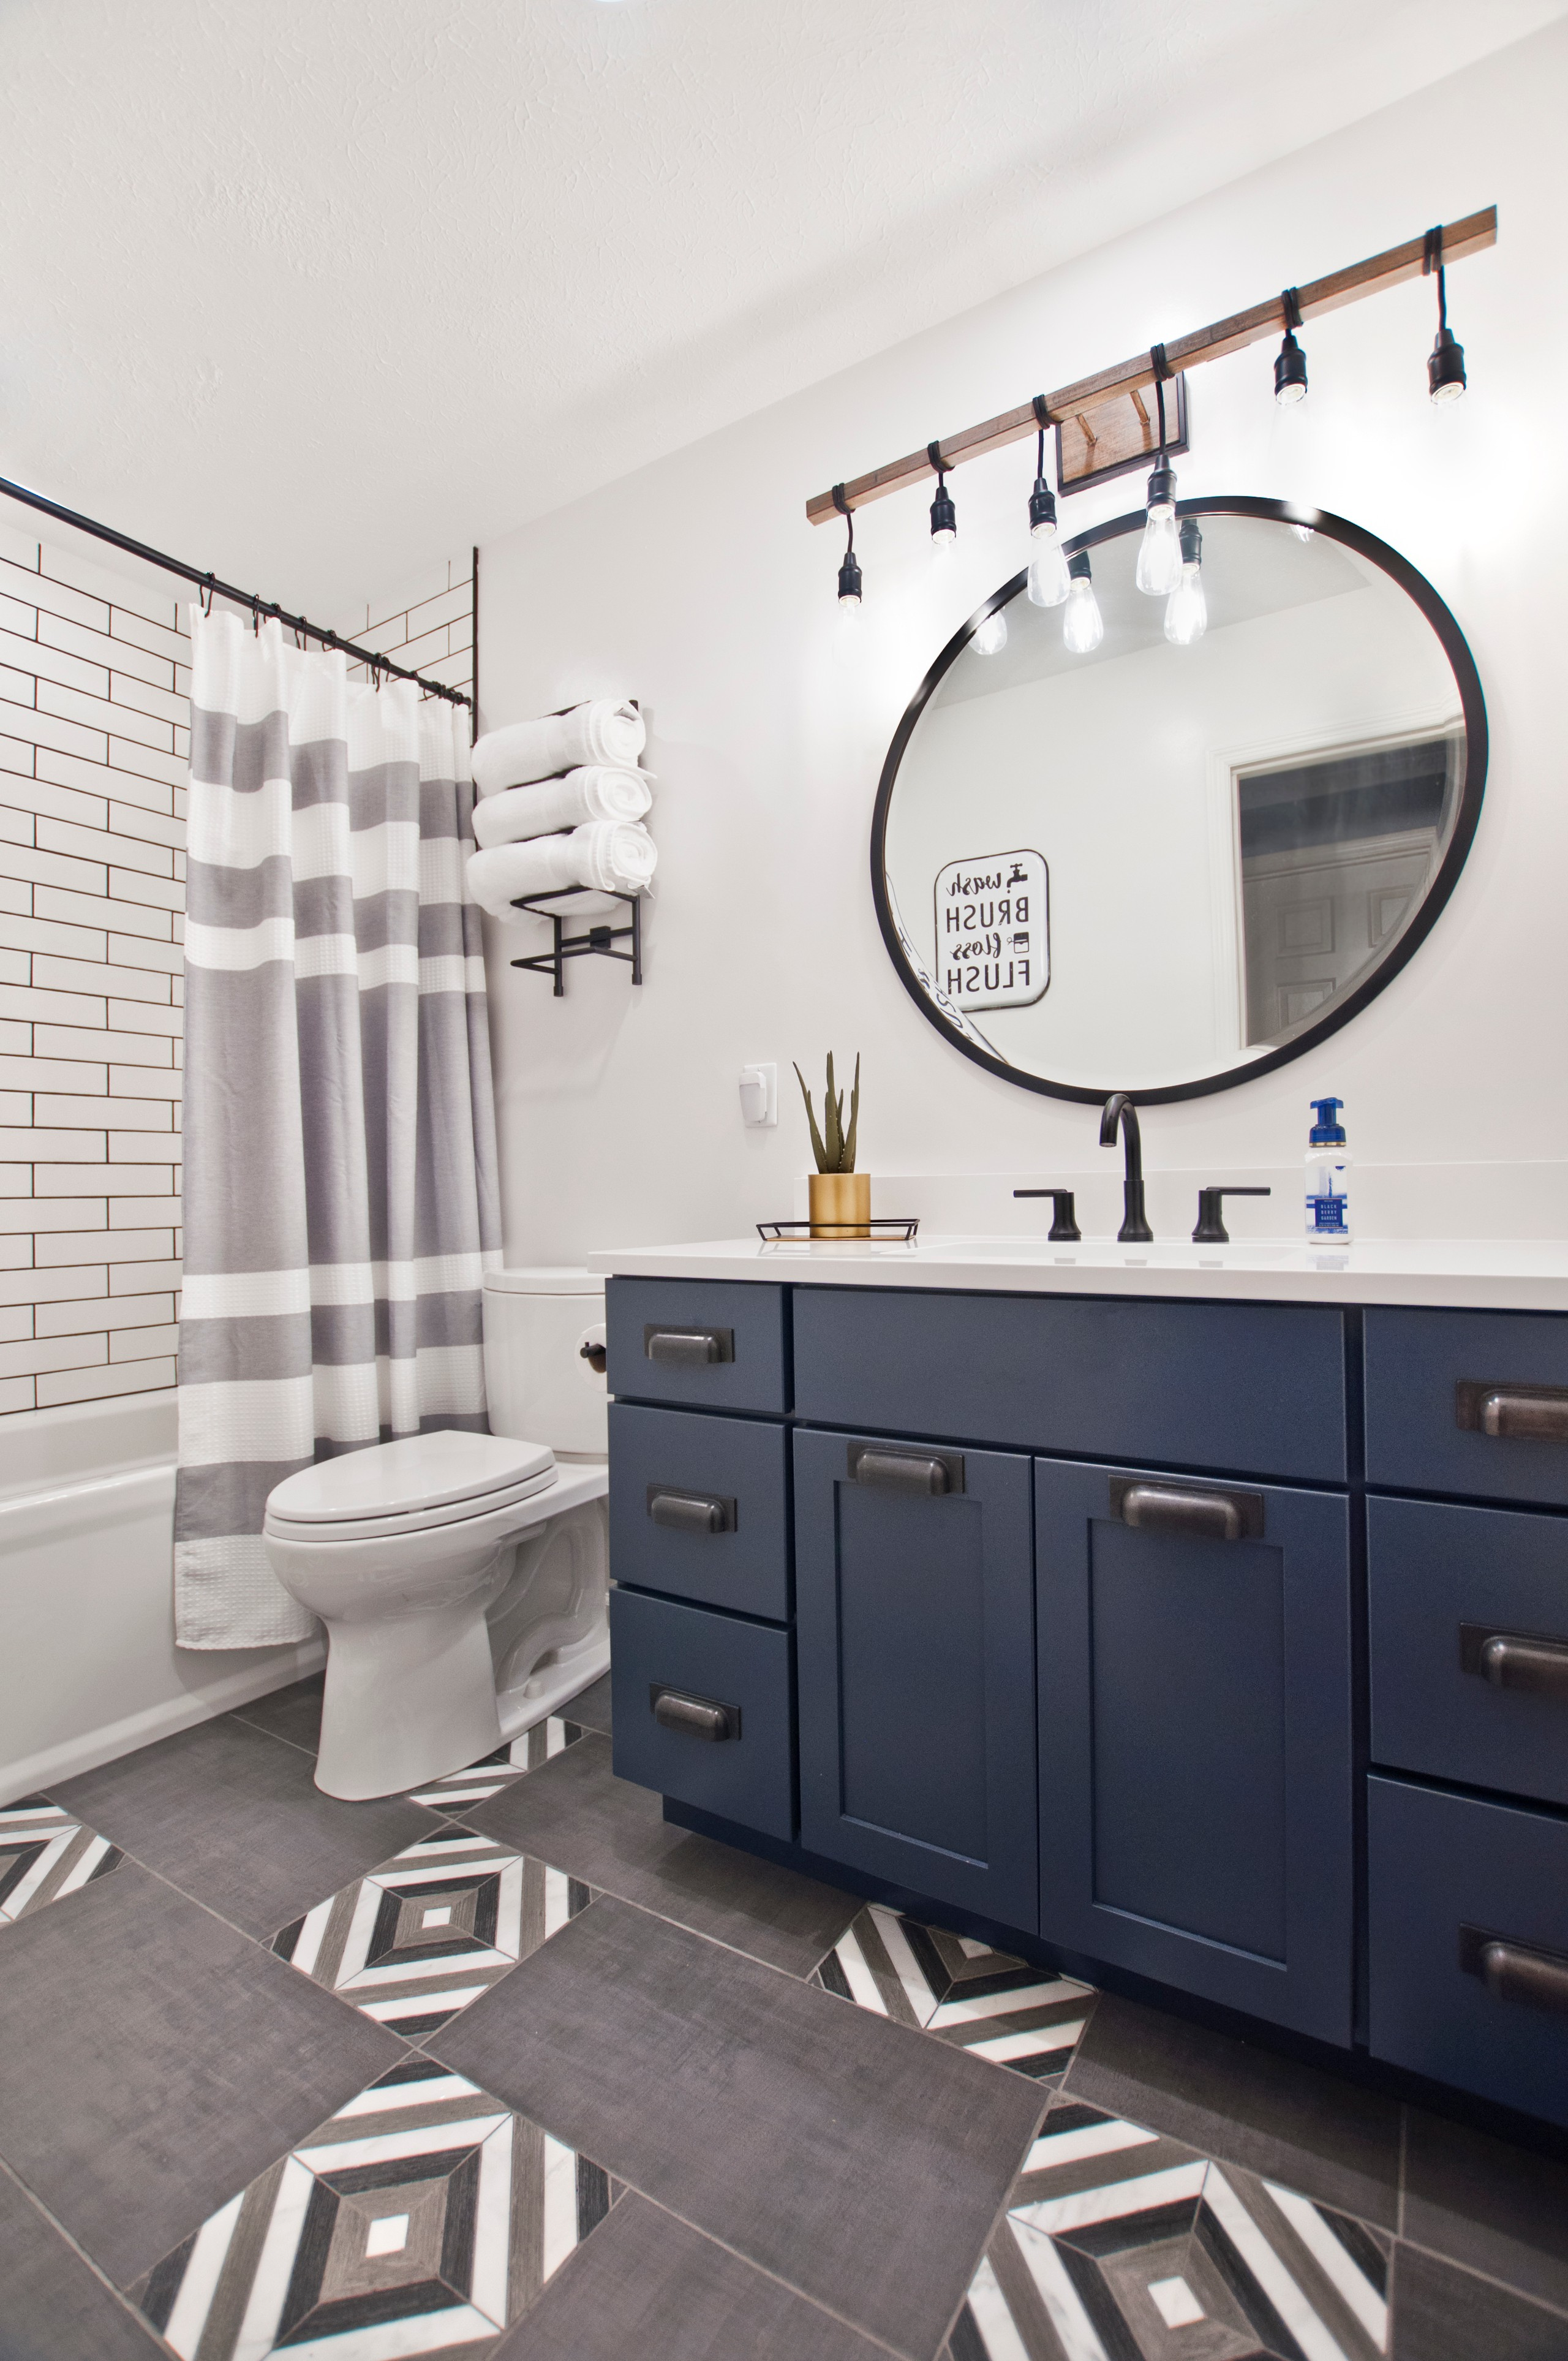 75 Beautiful Modern Tub Shower Combo Pictures Ideas January 2021 Houzz